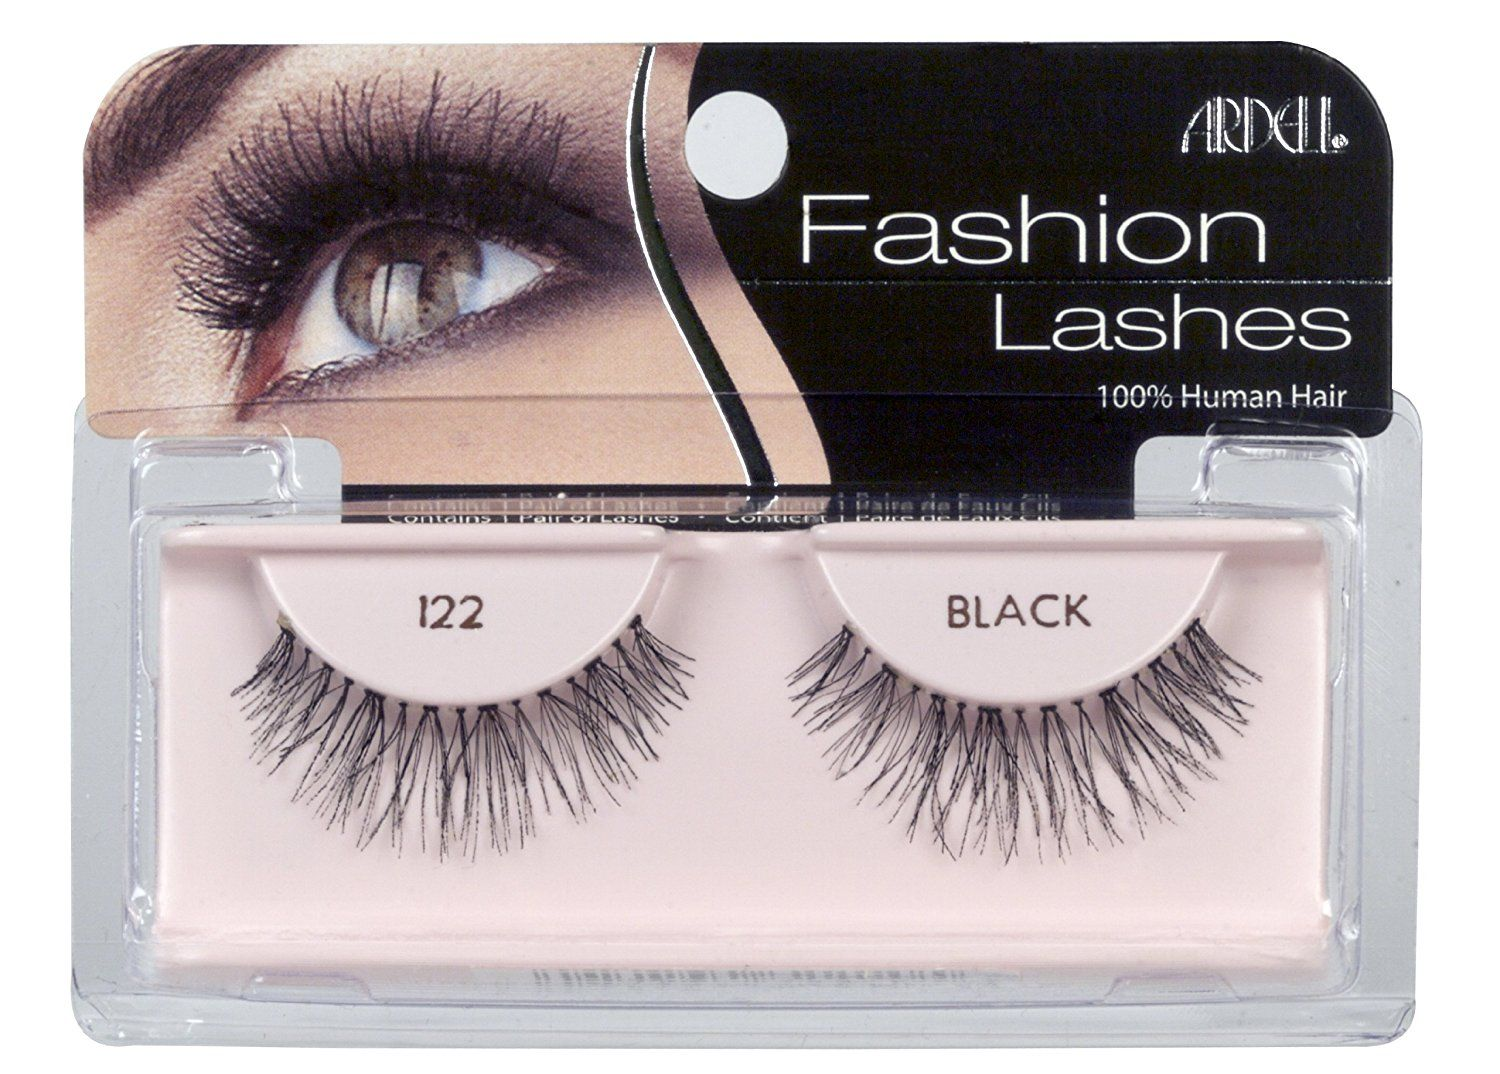 b0c216ece20 These five tips will help women over 50 get the most flattering look with false  eyelashes They say 50 is the new 30 and in many ways that may be true, ...